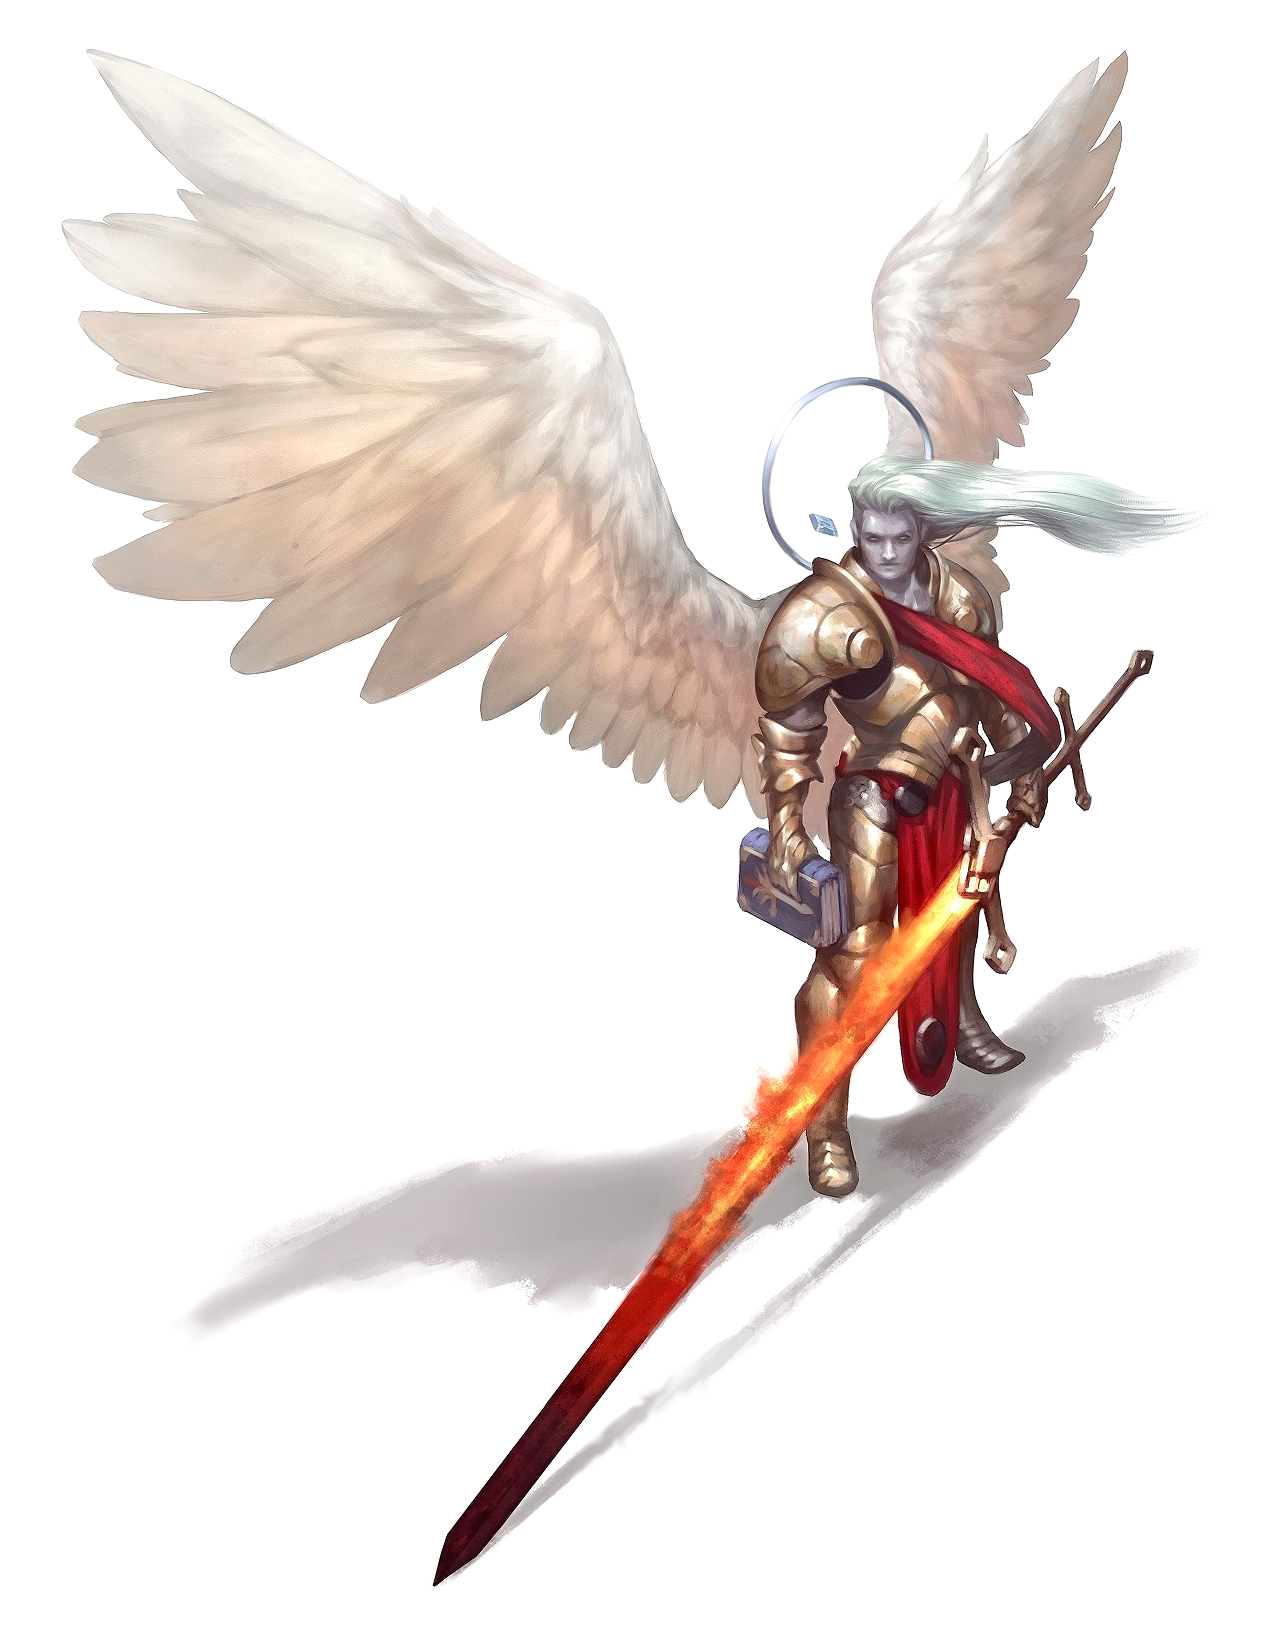 Greatsword Solar Angel Of War Belkzen Pathfinder Pfrpg Dnd D 3 5 5th Ed D20 Fantasy